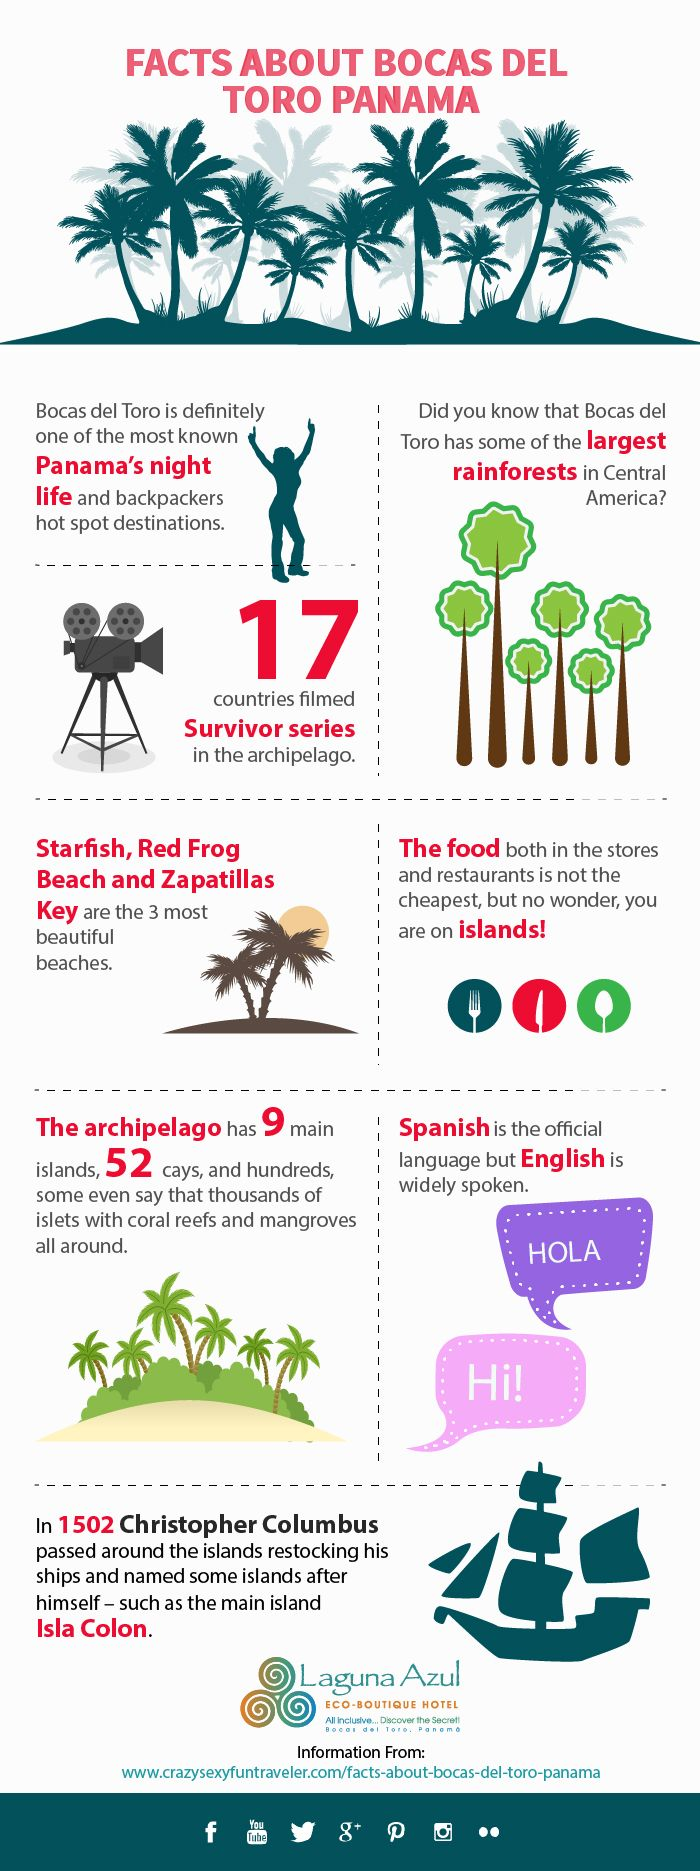 "Make your Caribbean vacation destination Bocas del Toro Panama. Our new ‪#‎Infographic‬ : ""Facts about bocas del Toro Panama"""